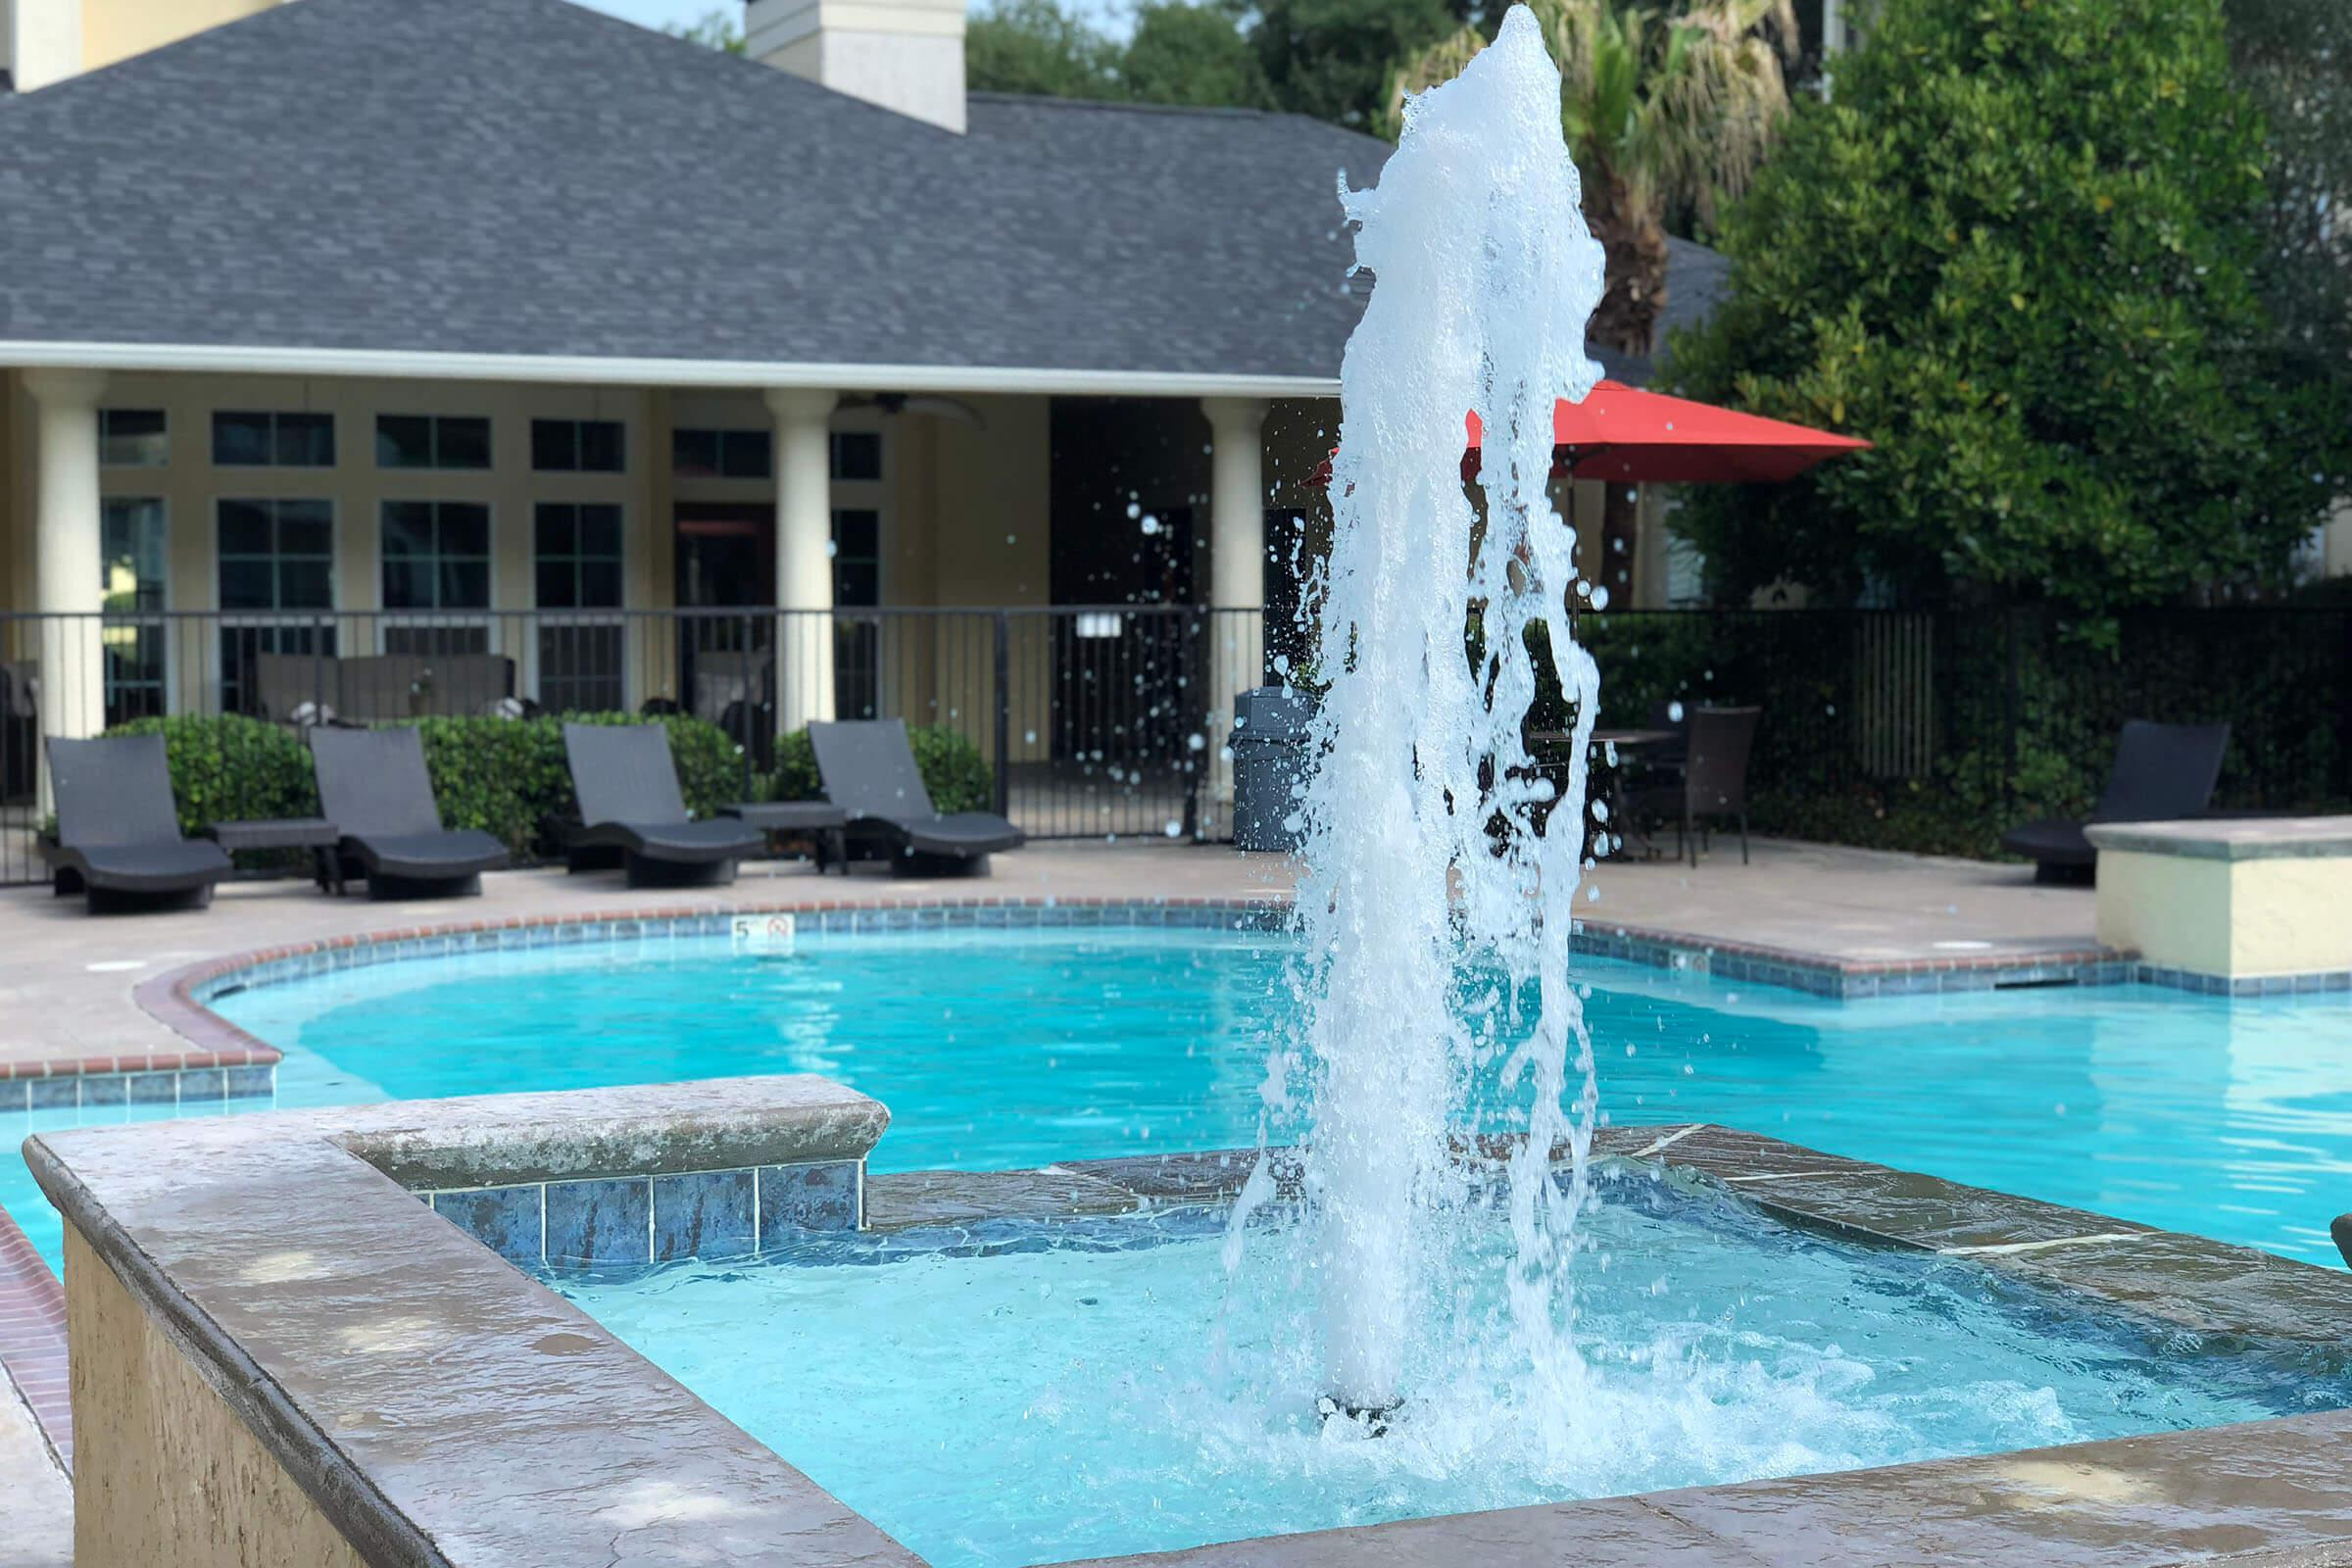 a fountain in a pool of water